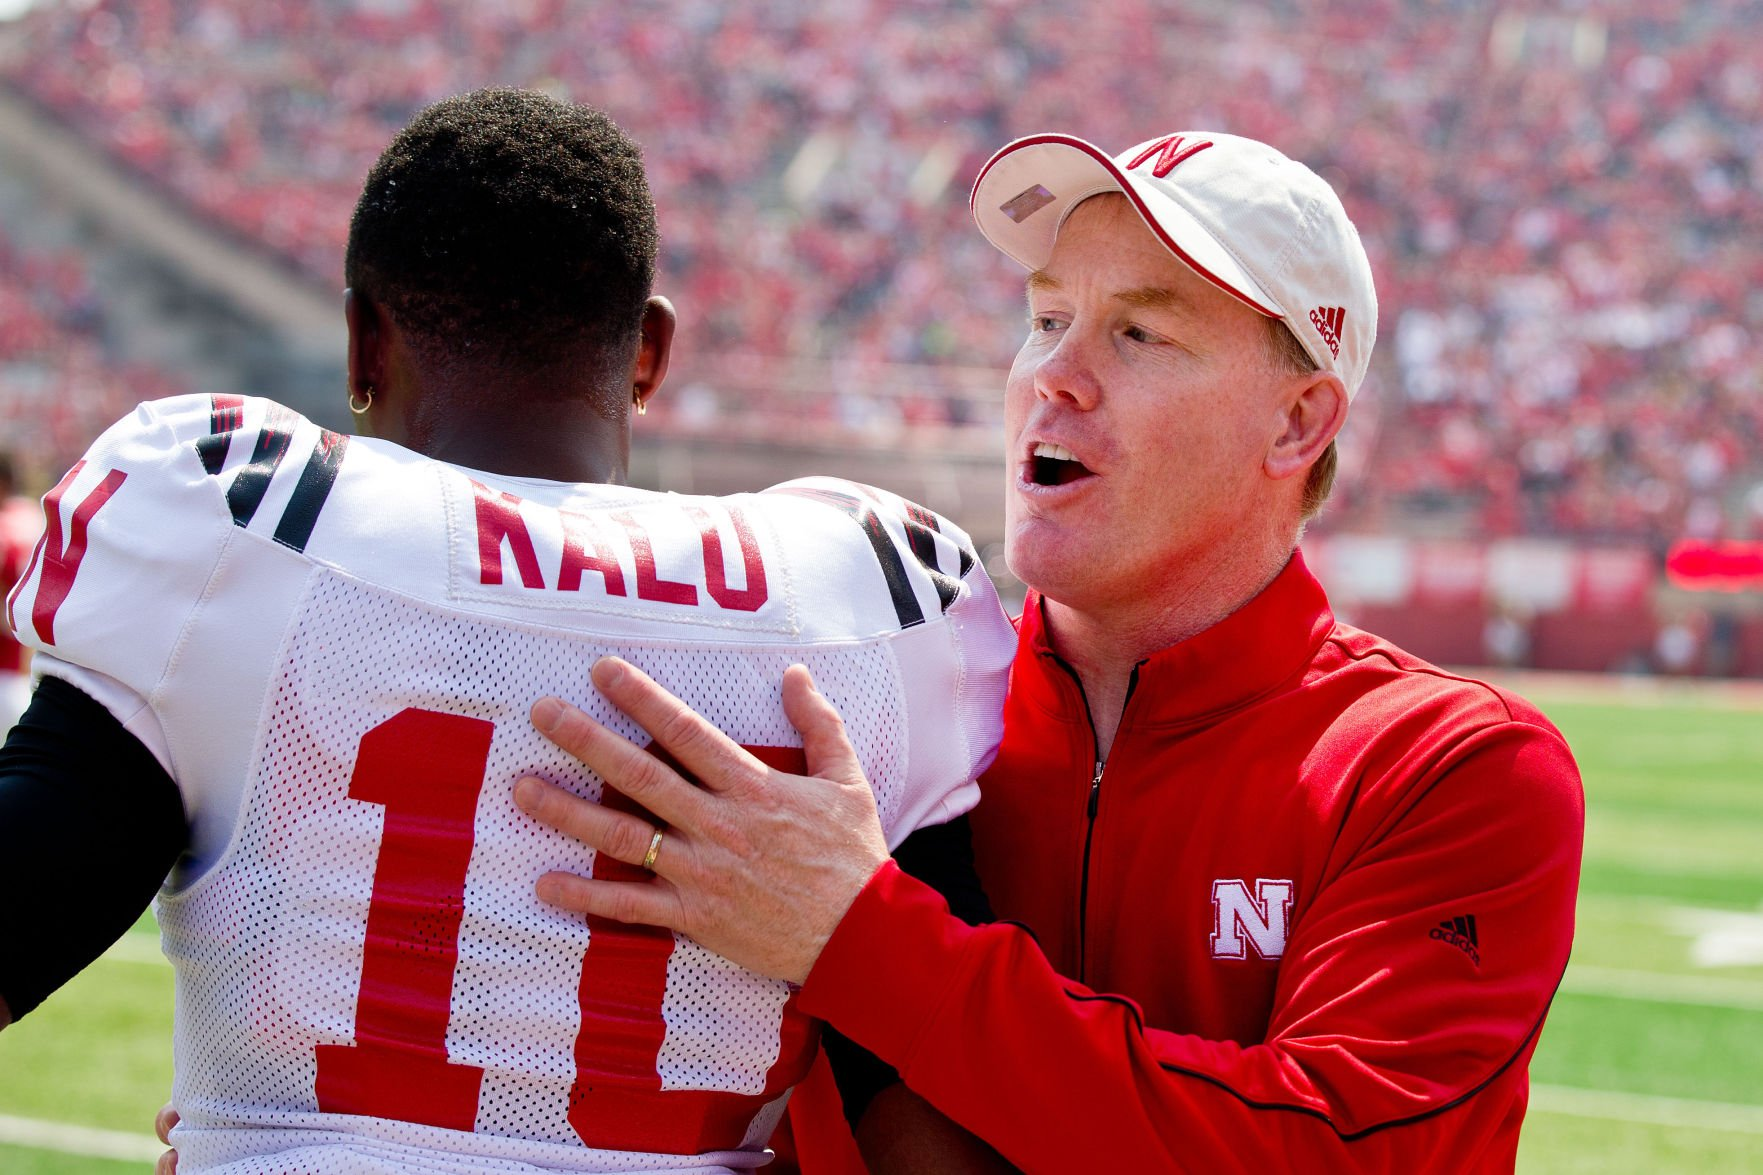 Huskers football community reacts to firing of AD Shawn Eichorst